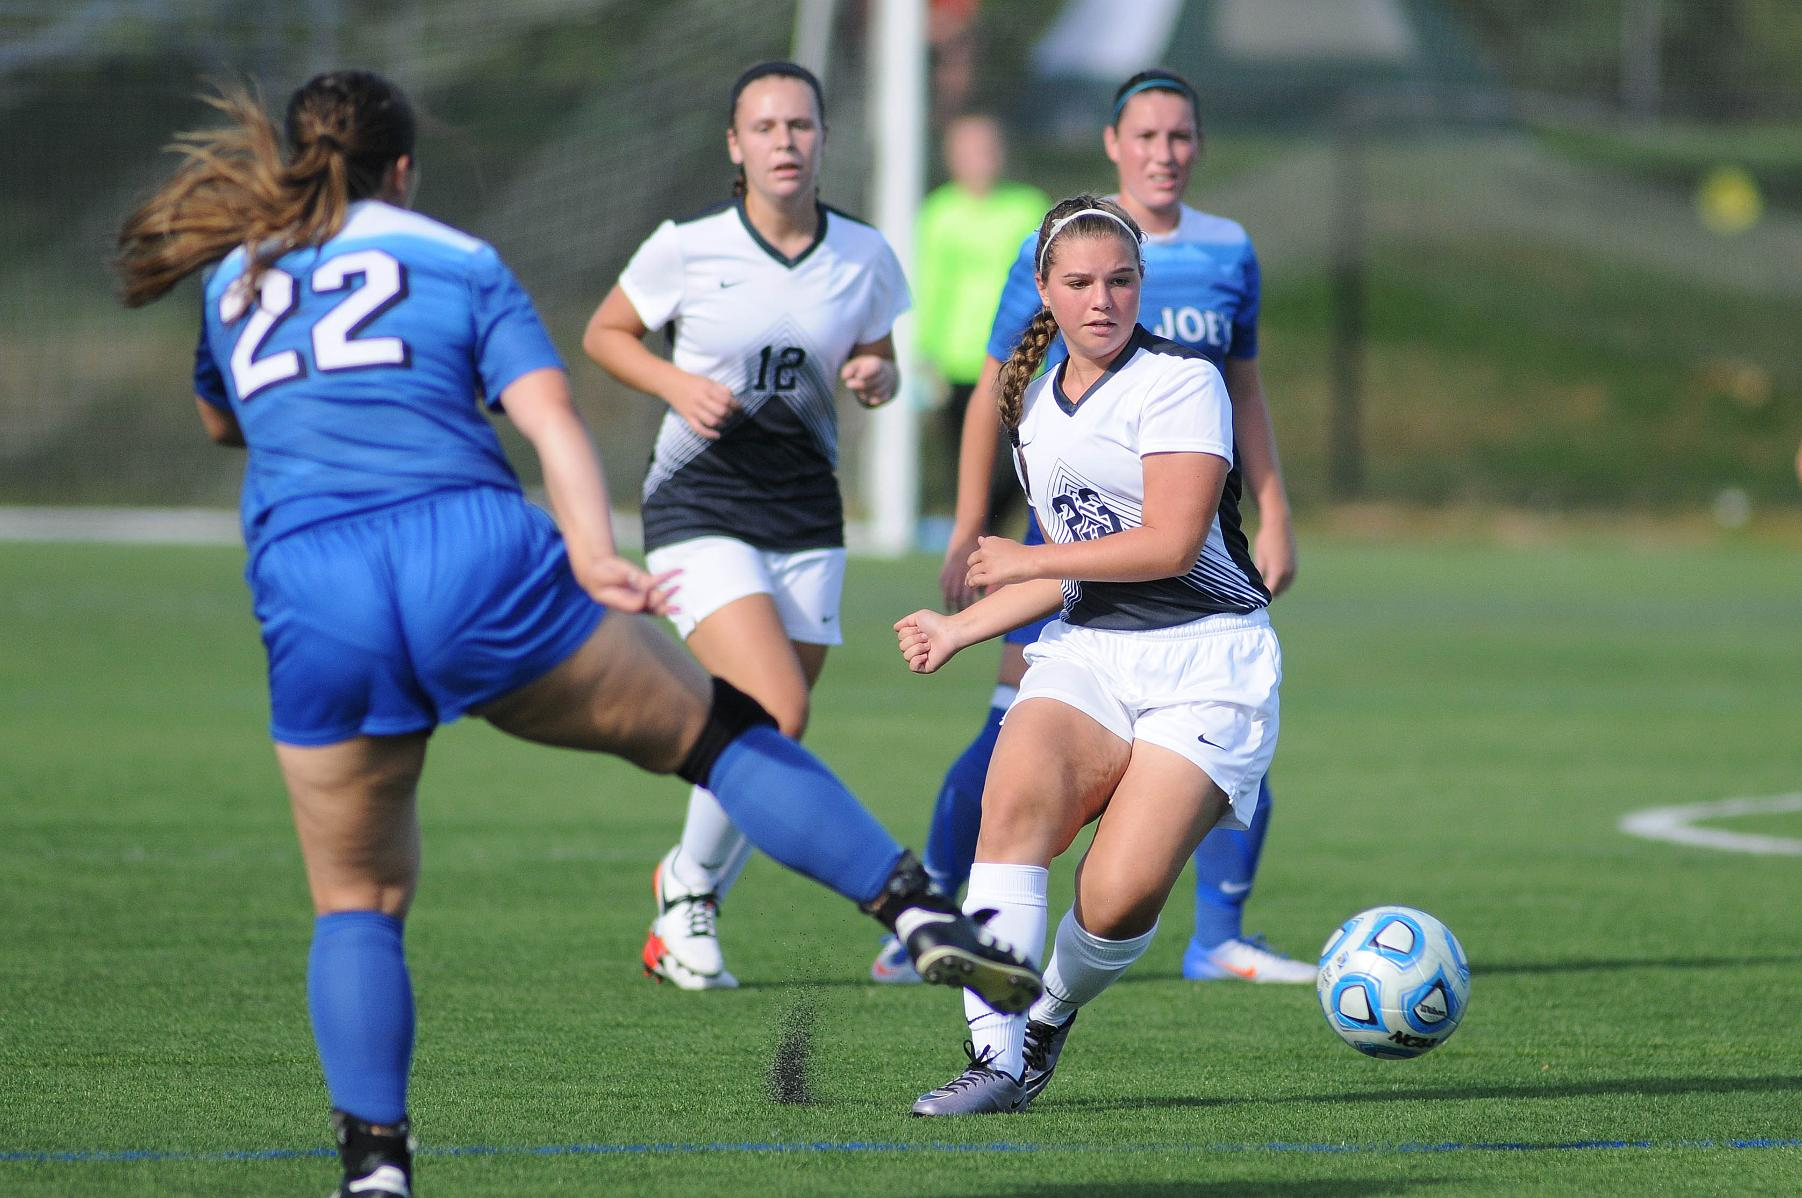 Women's Soccer: Raiders drop non-conference contest to Nichols, 2-1